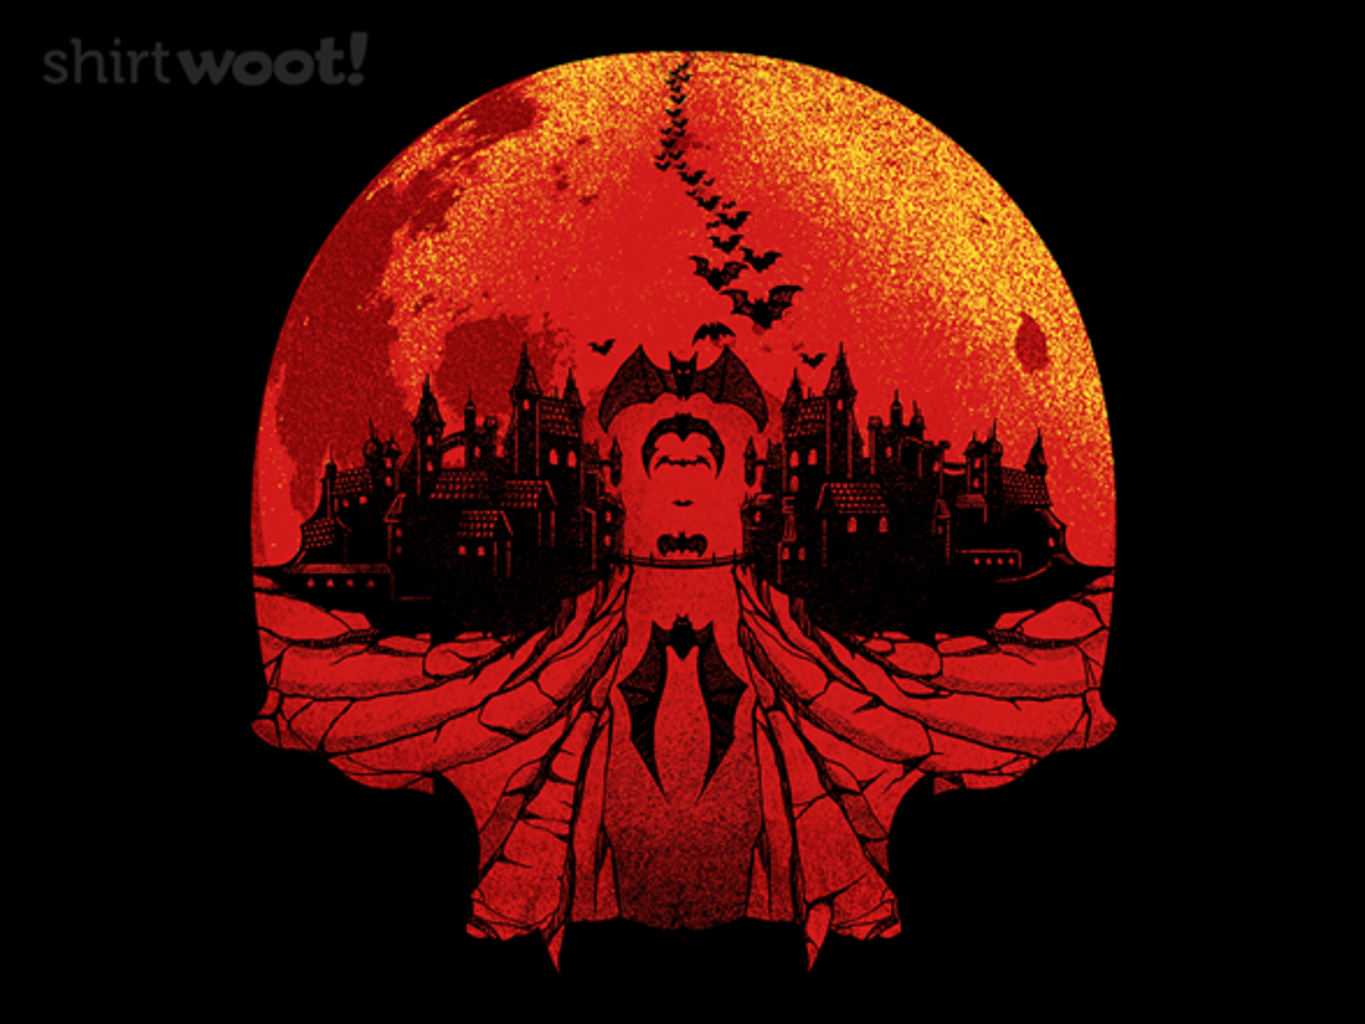 Woot!: The Blood Moon